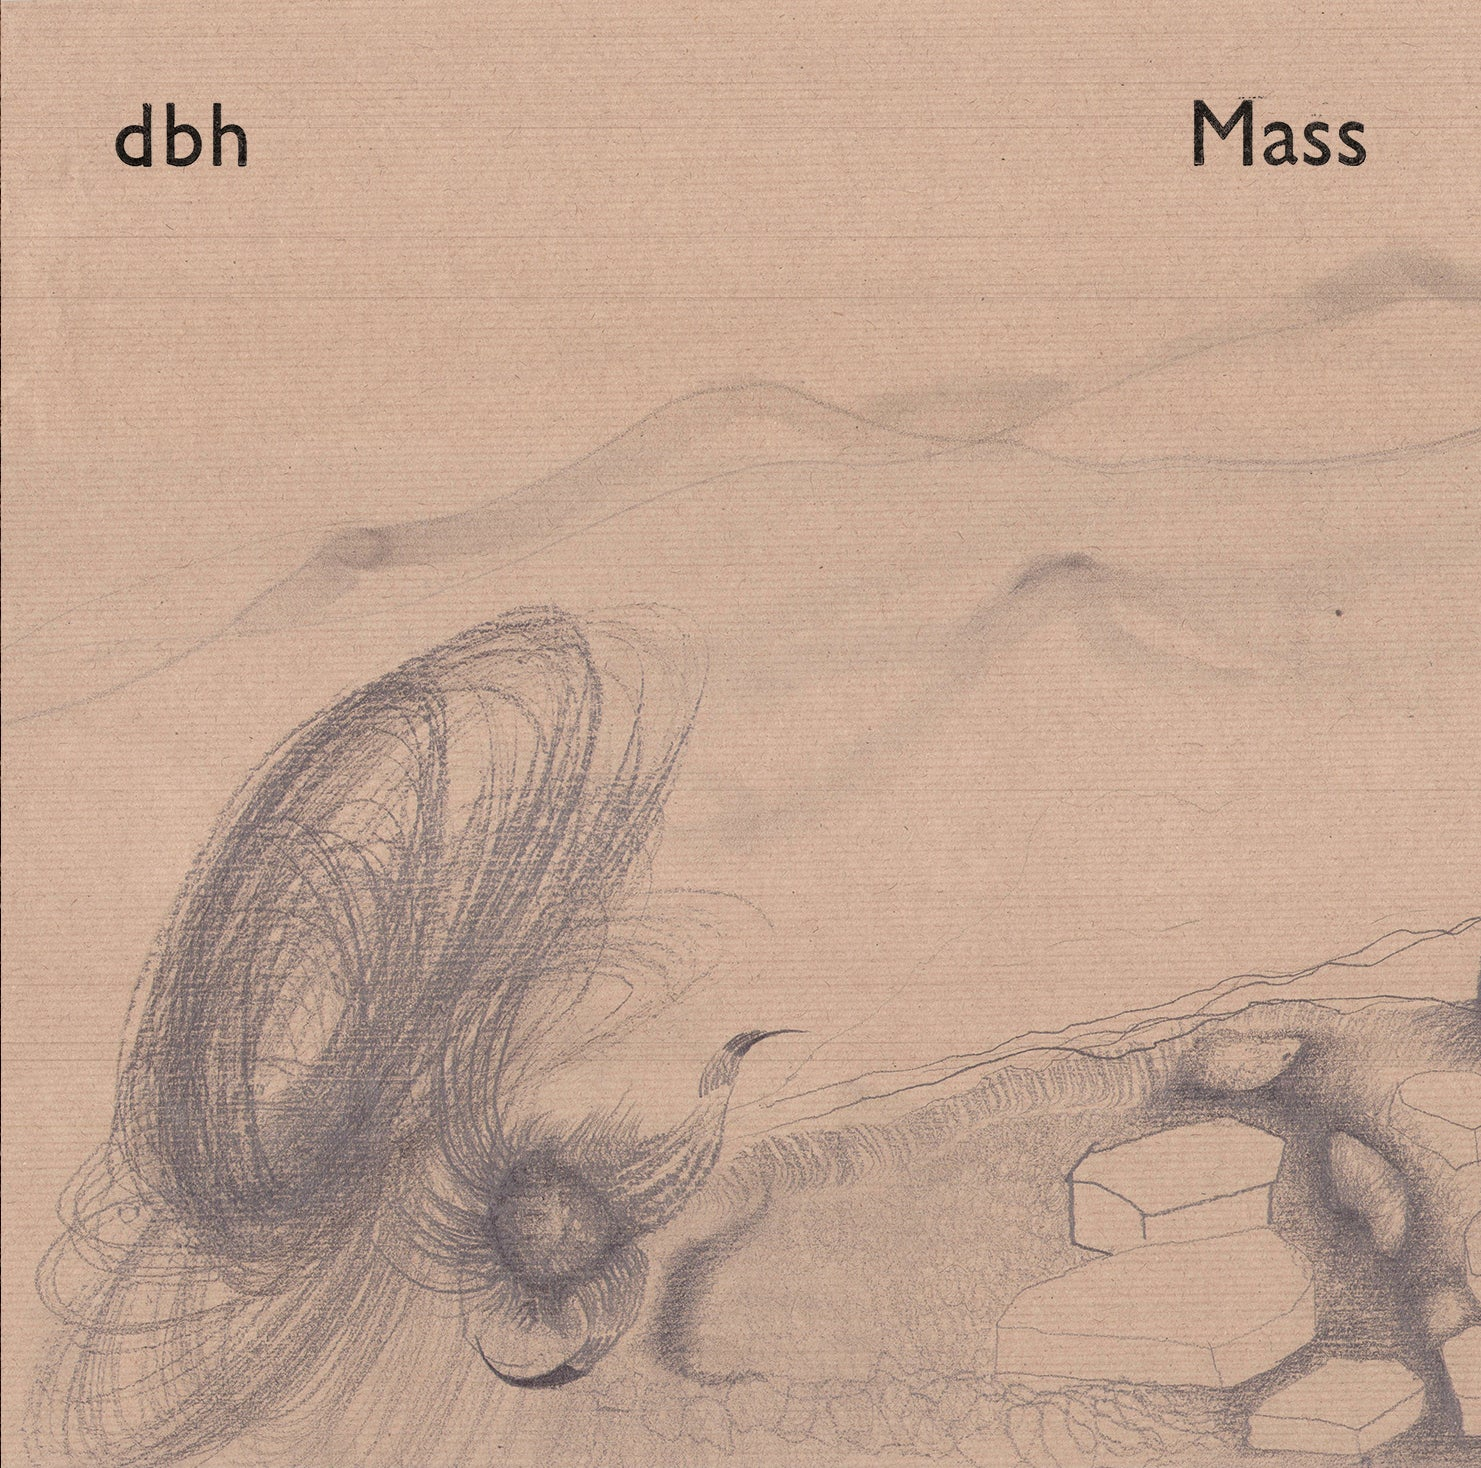 <small>005</small><br>dbh<br><i>Mass</i> (LP)